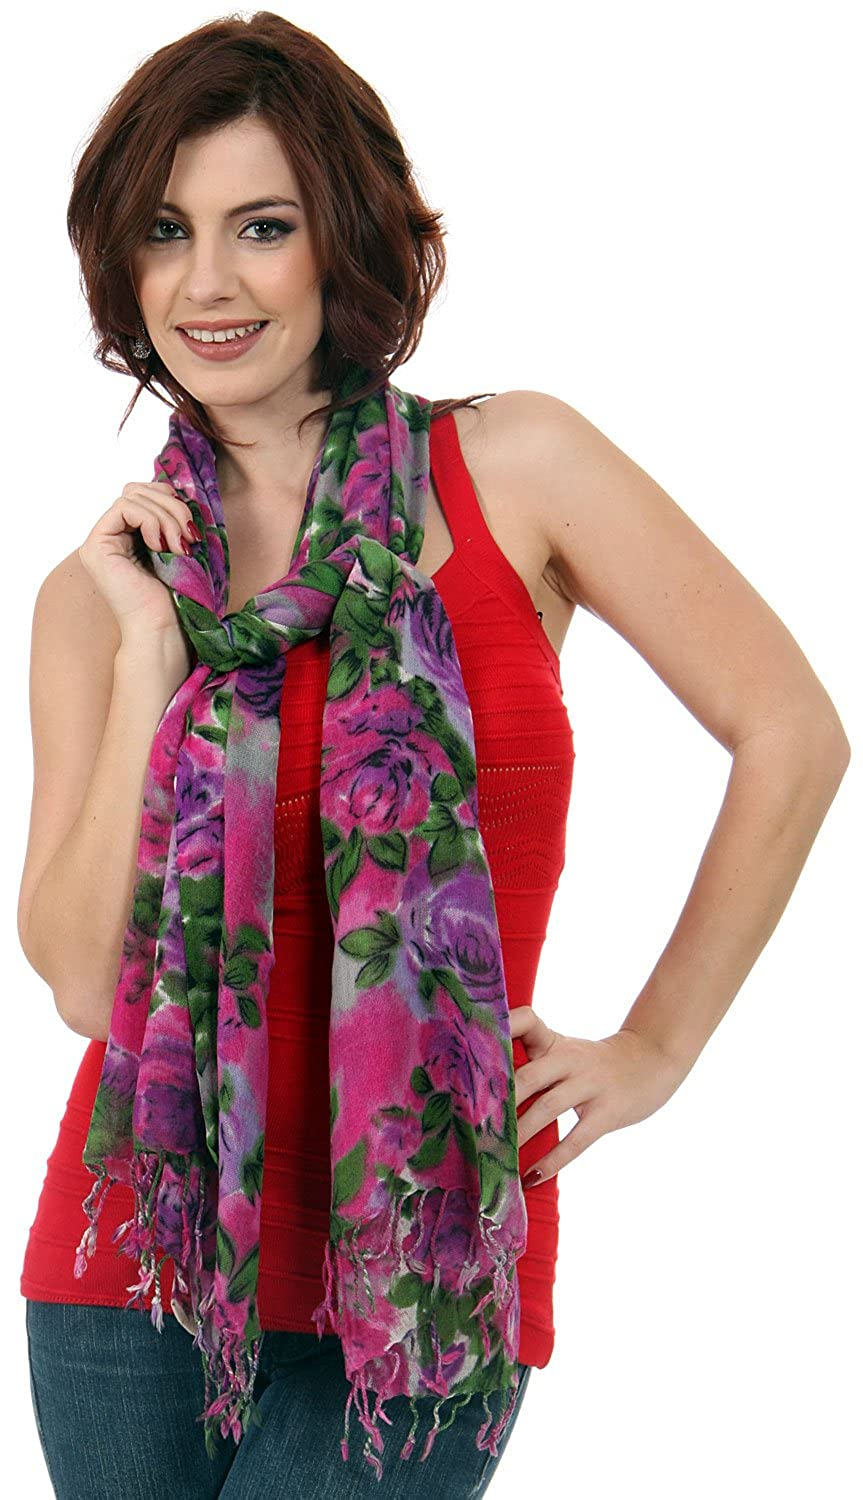 MOKA's Womens Roses print Wool Scarf in Fuchsia/Purple 27.5x72 inches